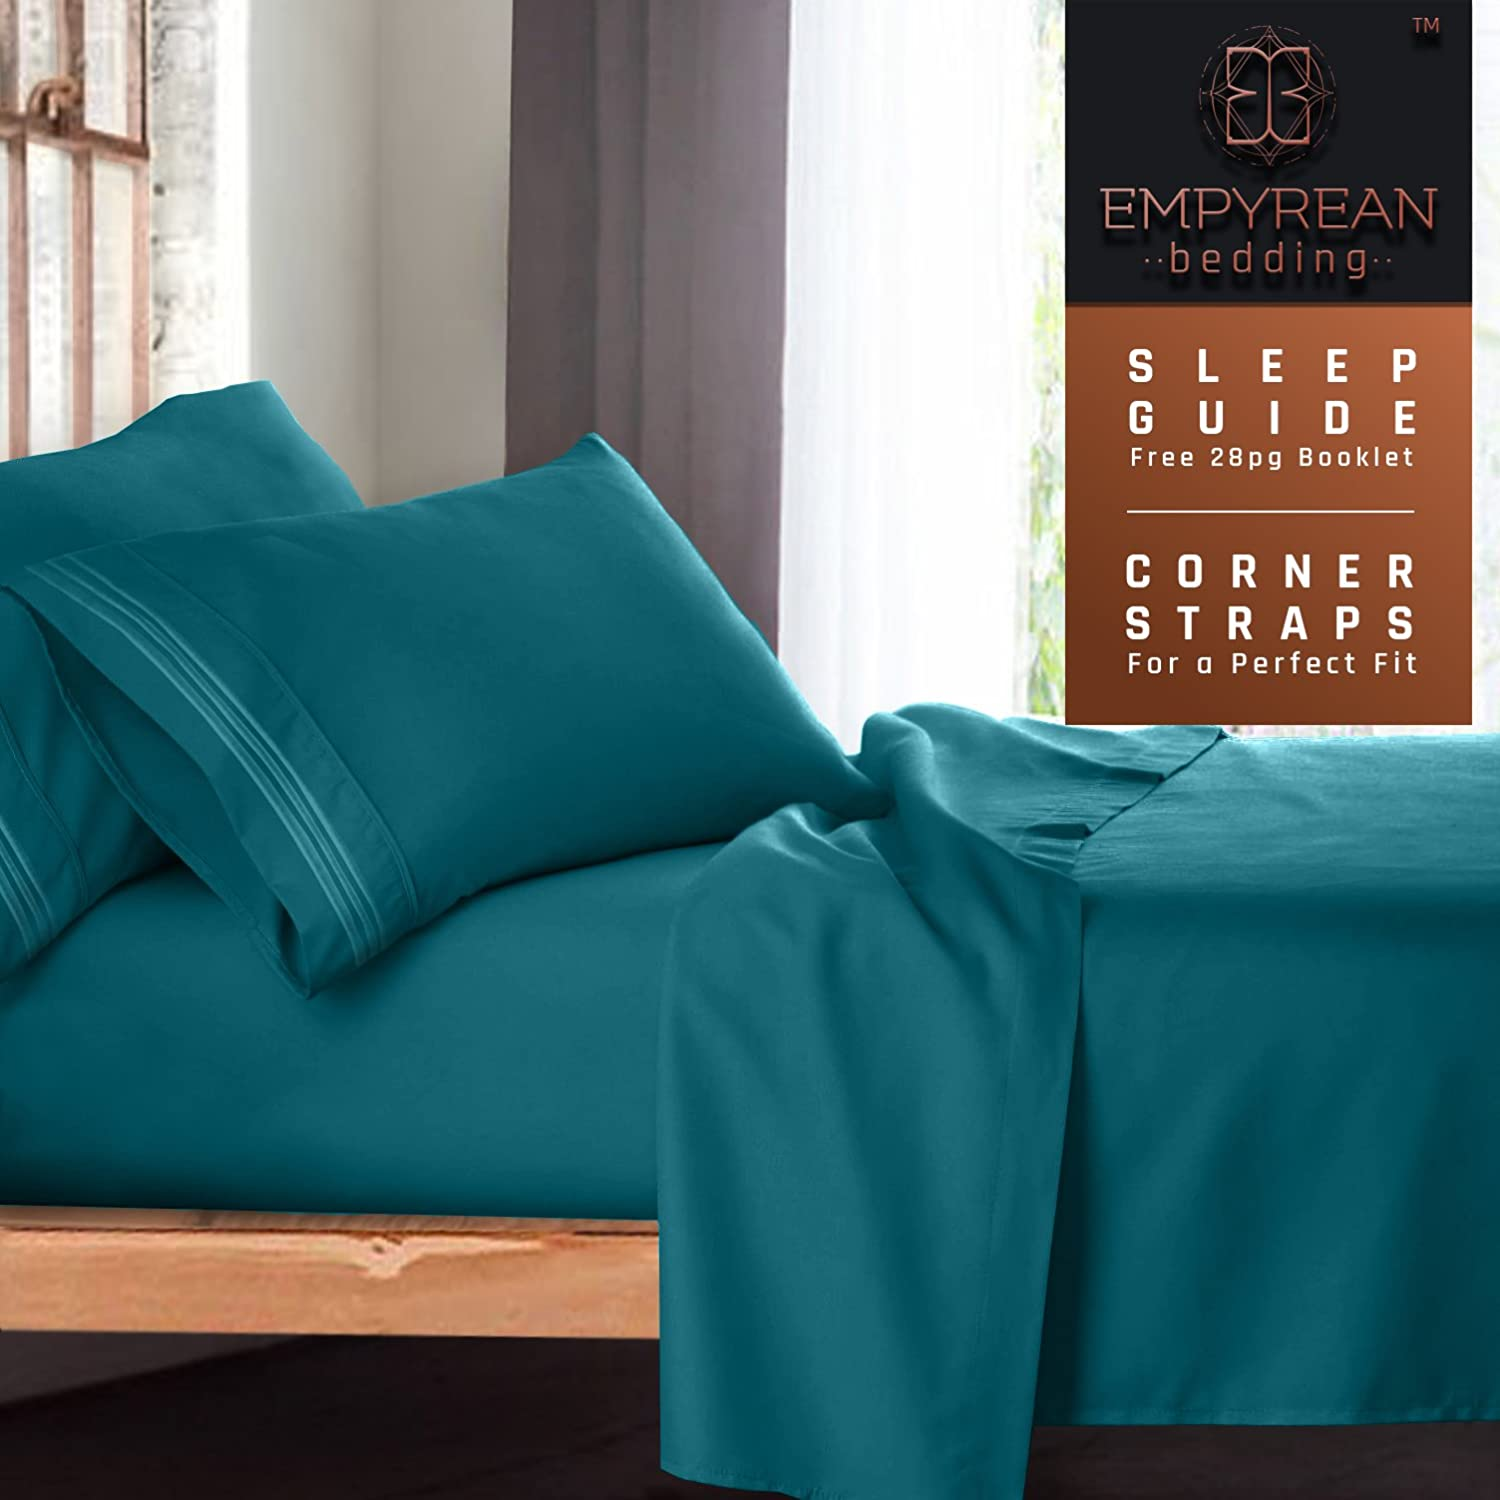 Queen Size Bed Sheets Set, Teal Turquoise - Soft Luxury Best Quality 4-Piece Bed Set